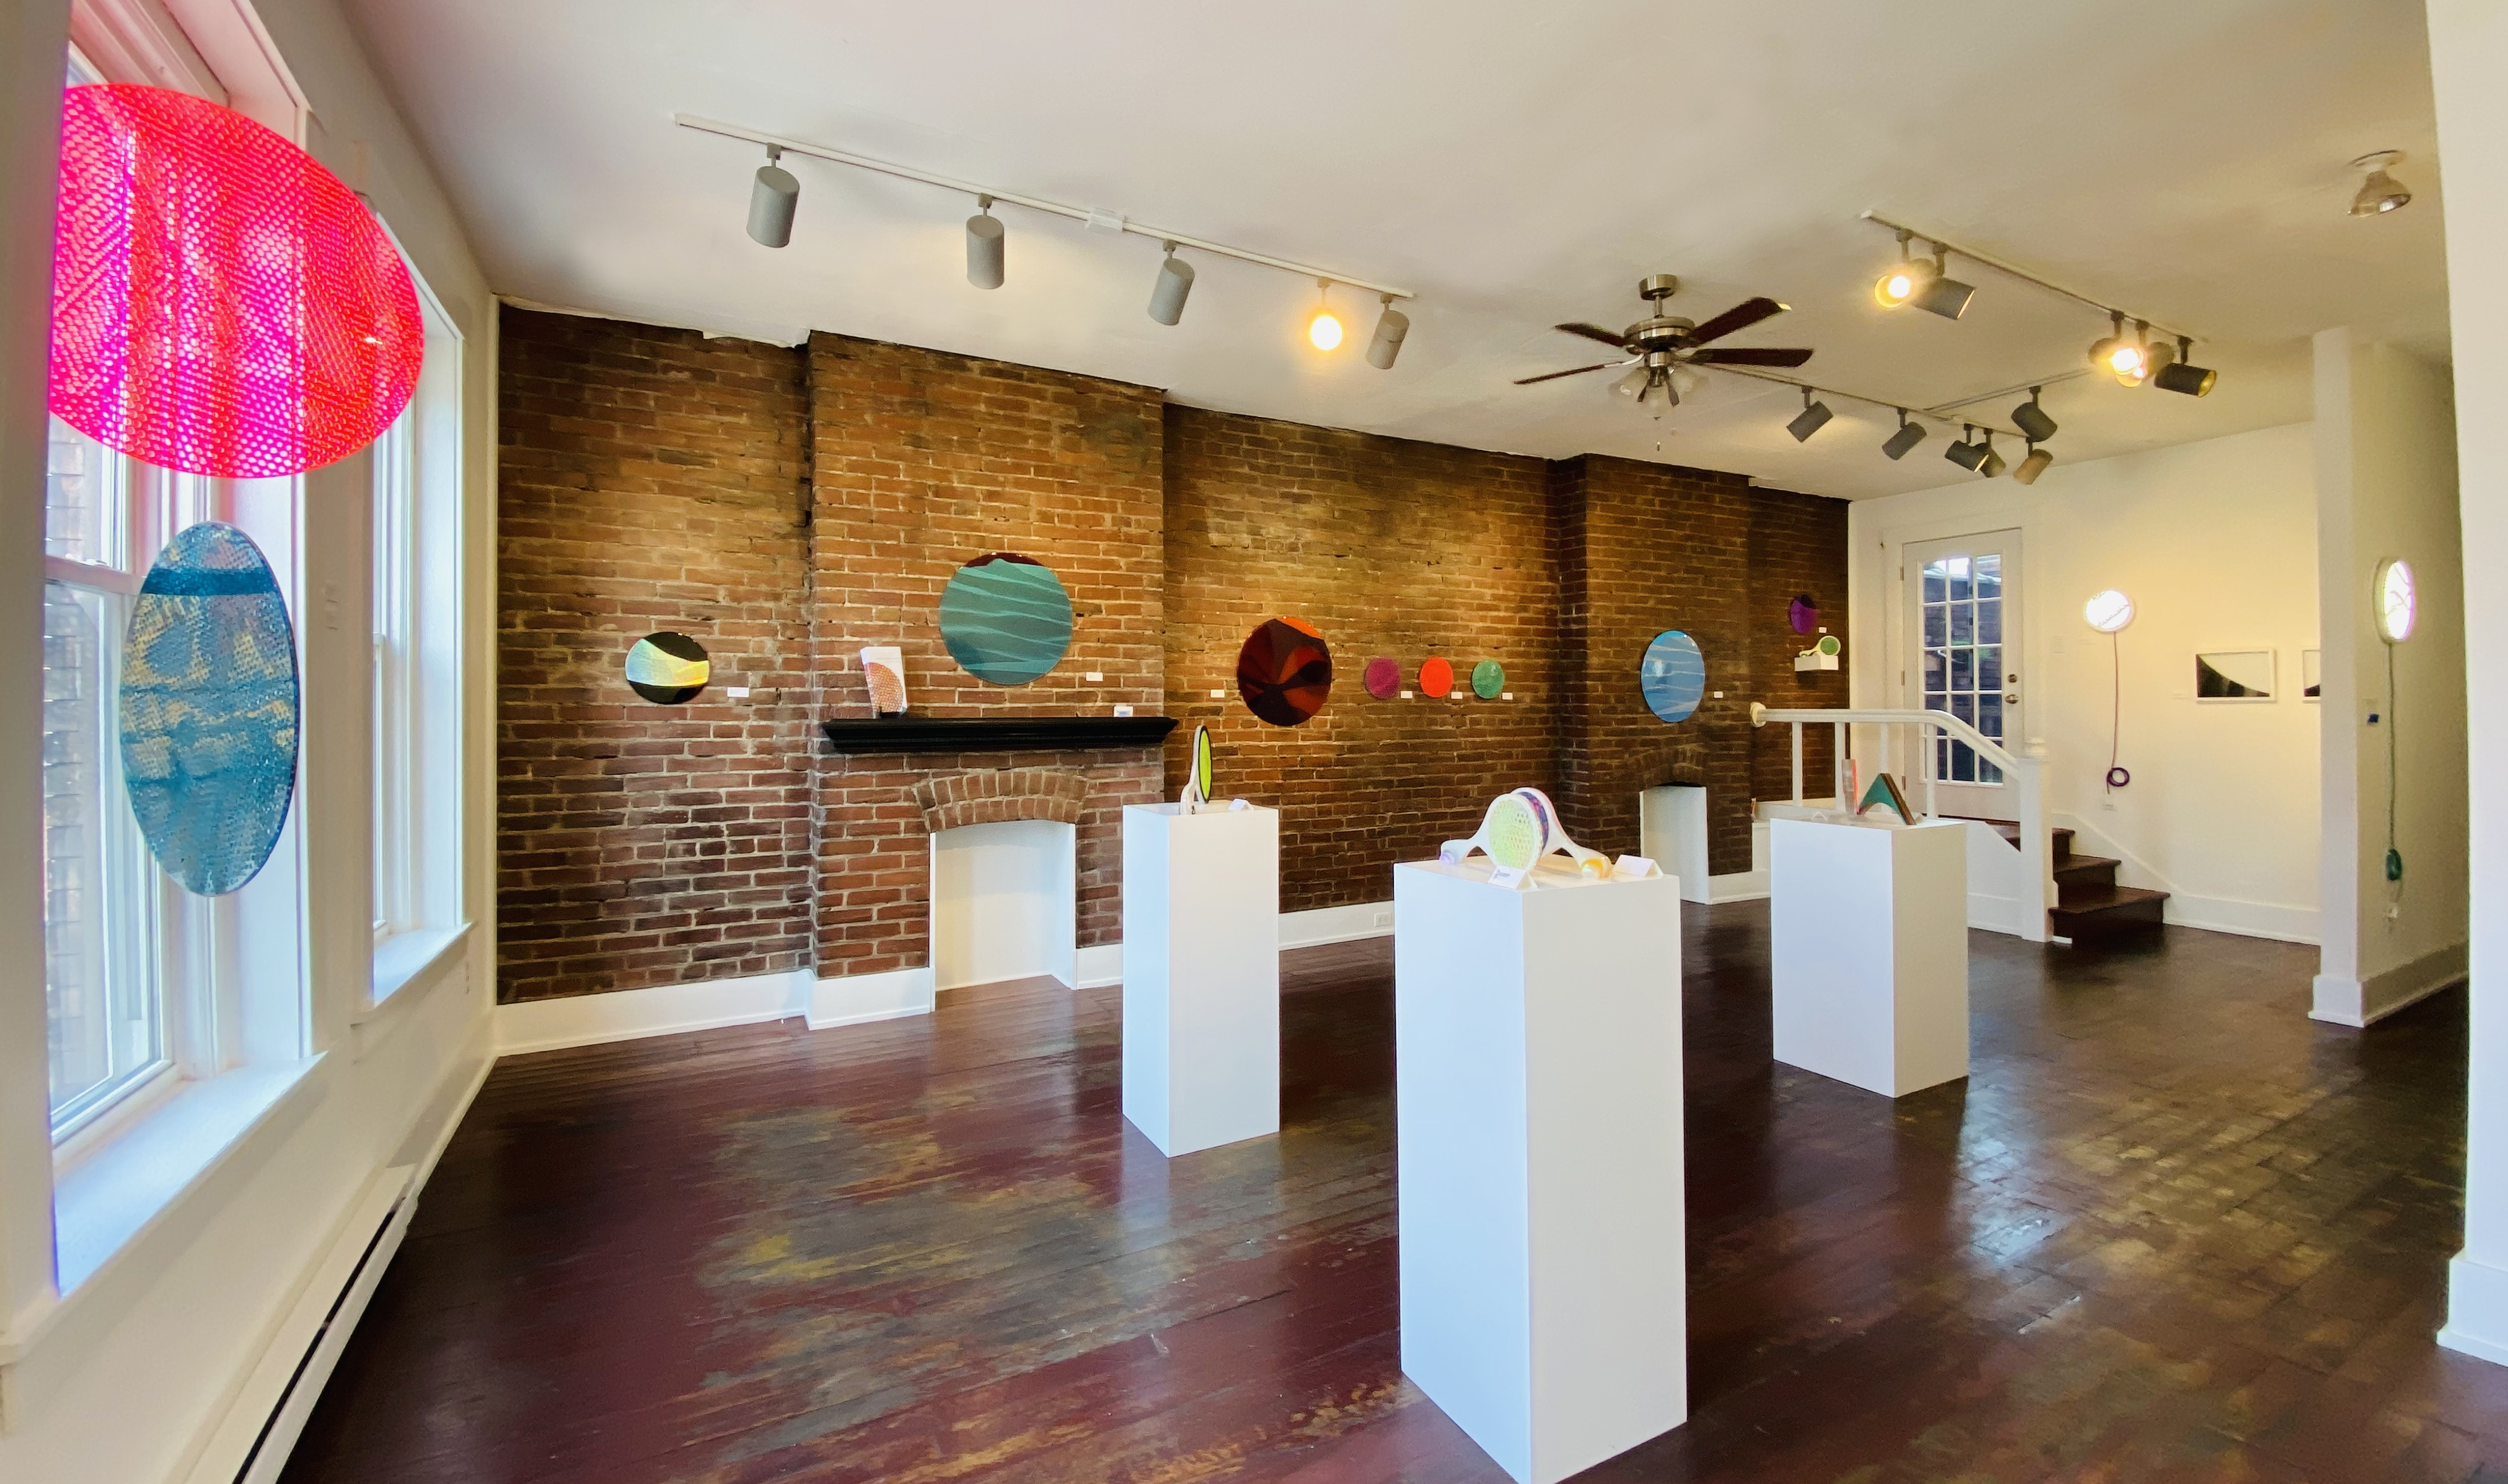 Jessica Alpern Brown: Divide and Light @ BoxHeart Gallery